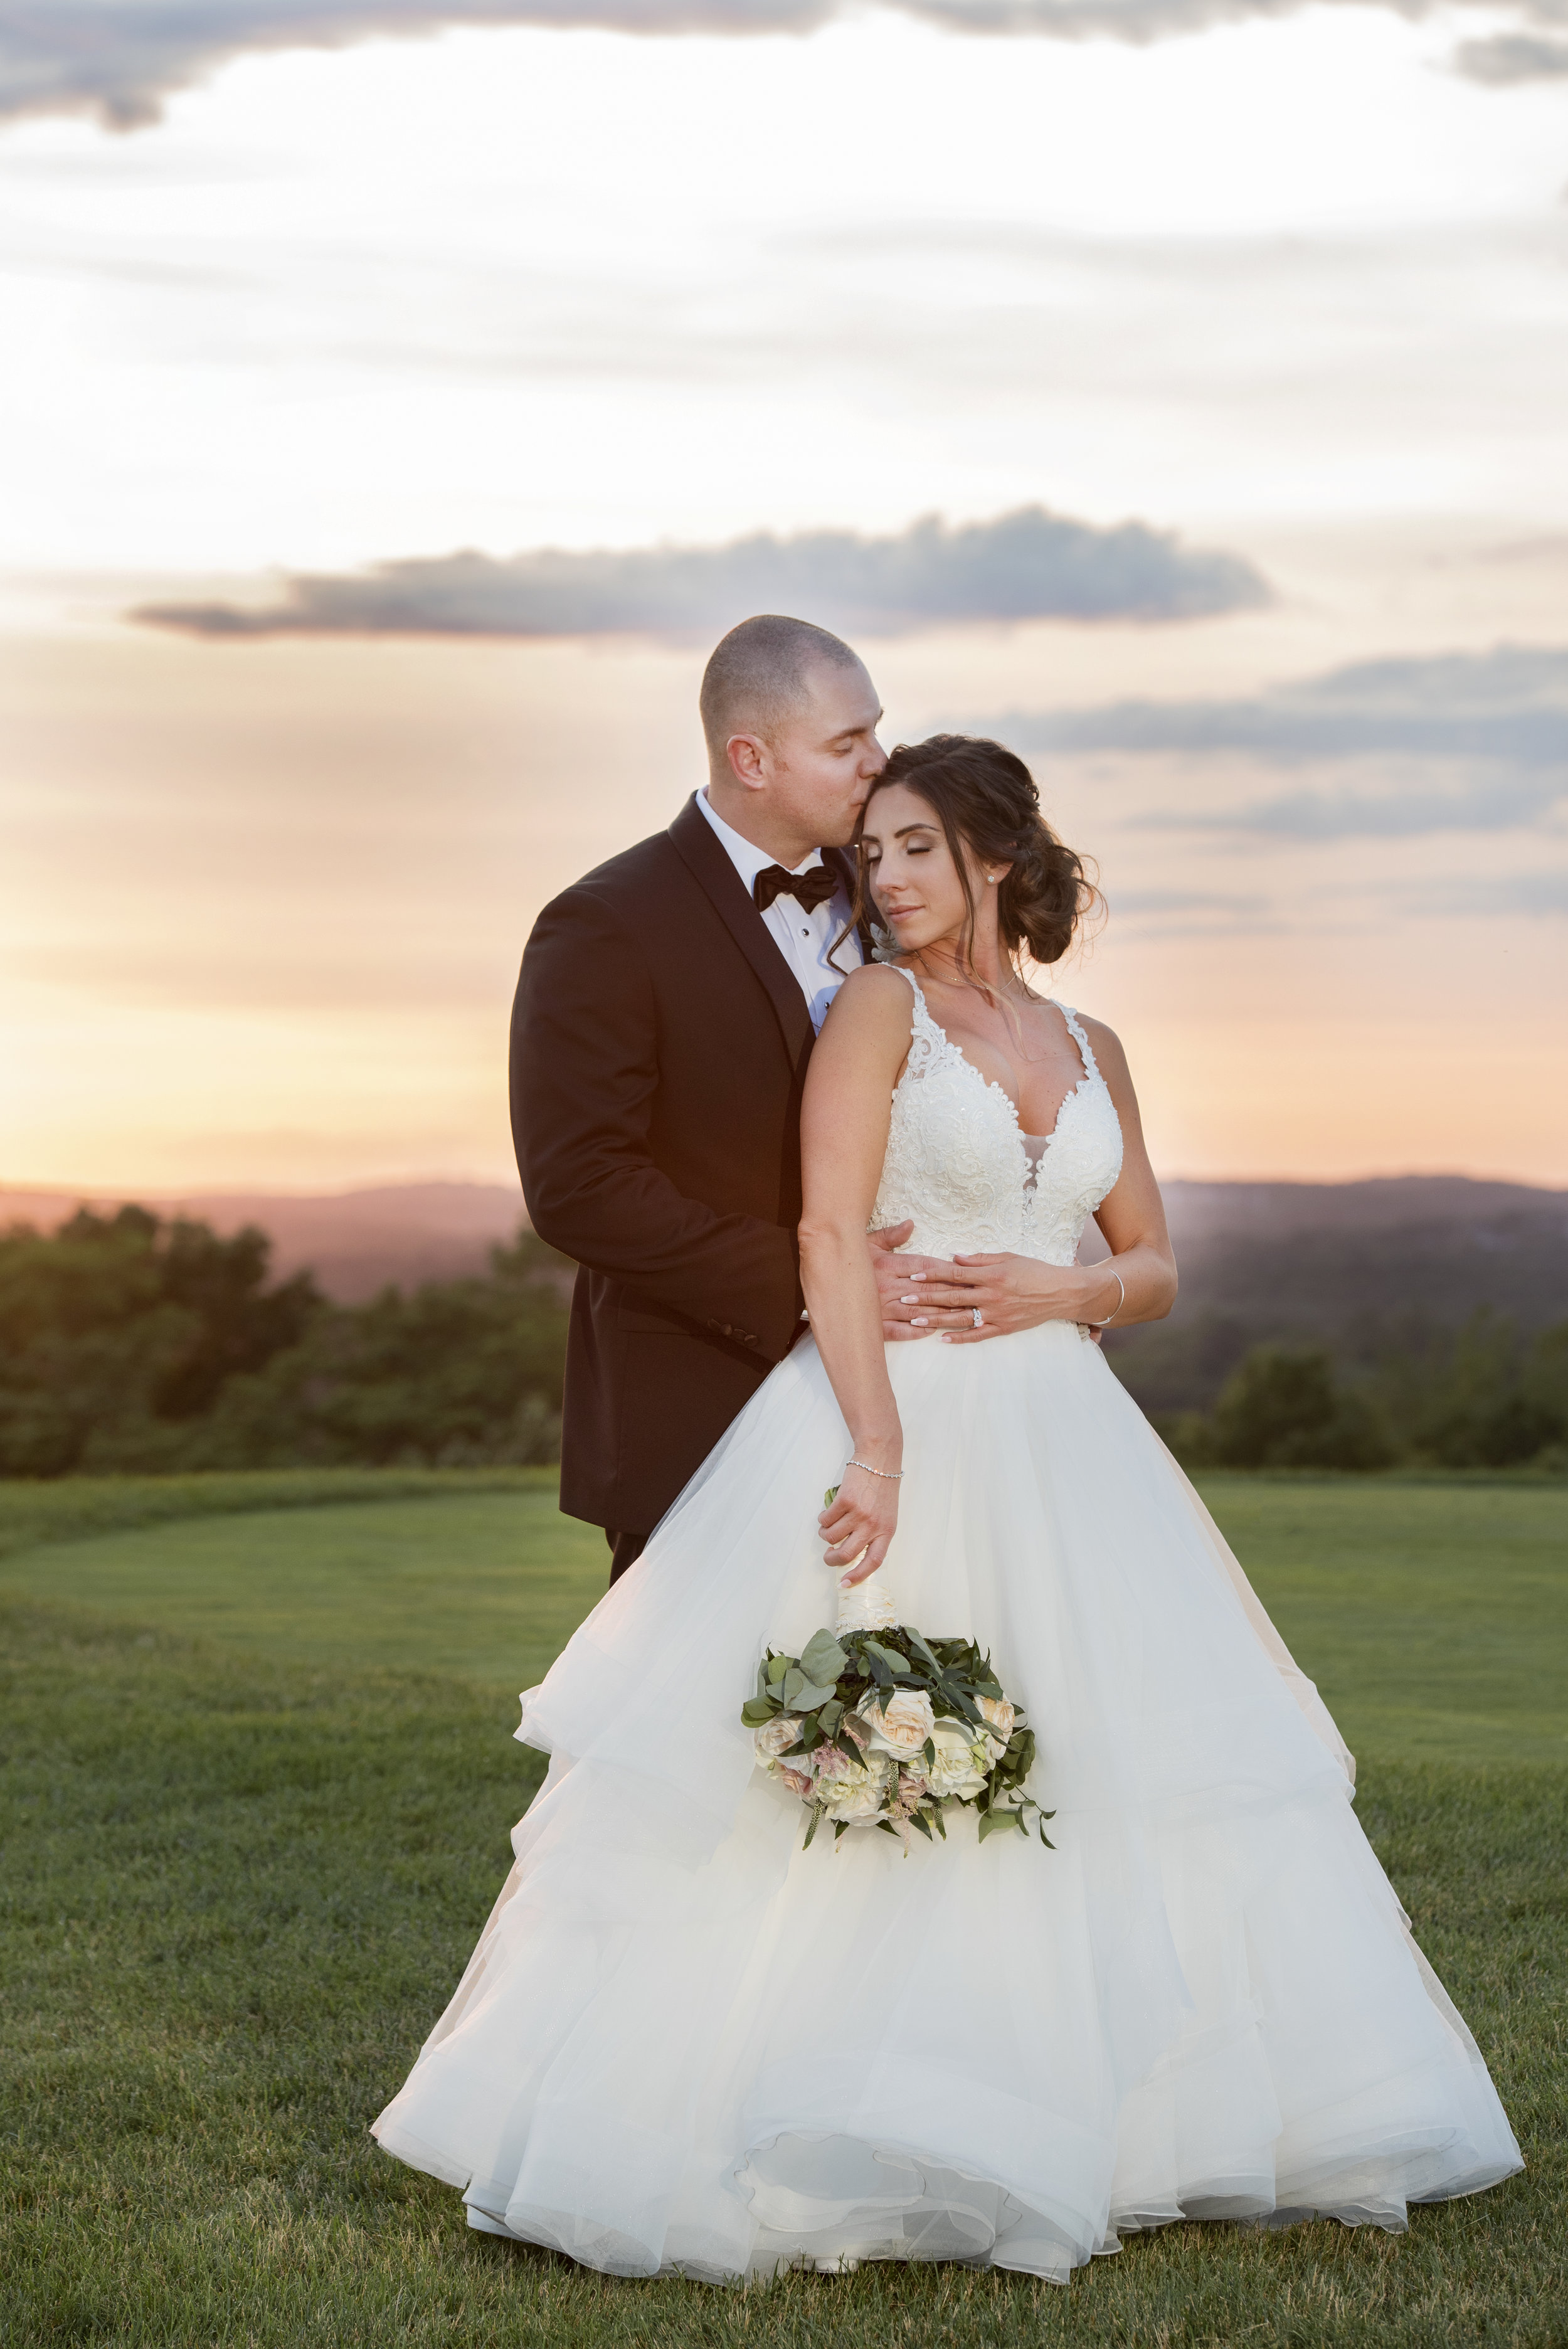 Bella + Dan 06.22.19 - All I can say about Tatiana is that her work and professionalism blew my husband and myself always. She captured our magical day and paid attention to all the details I put into our wedding. If you want the ideal photographer for your wedding I highly recommend her.